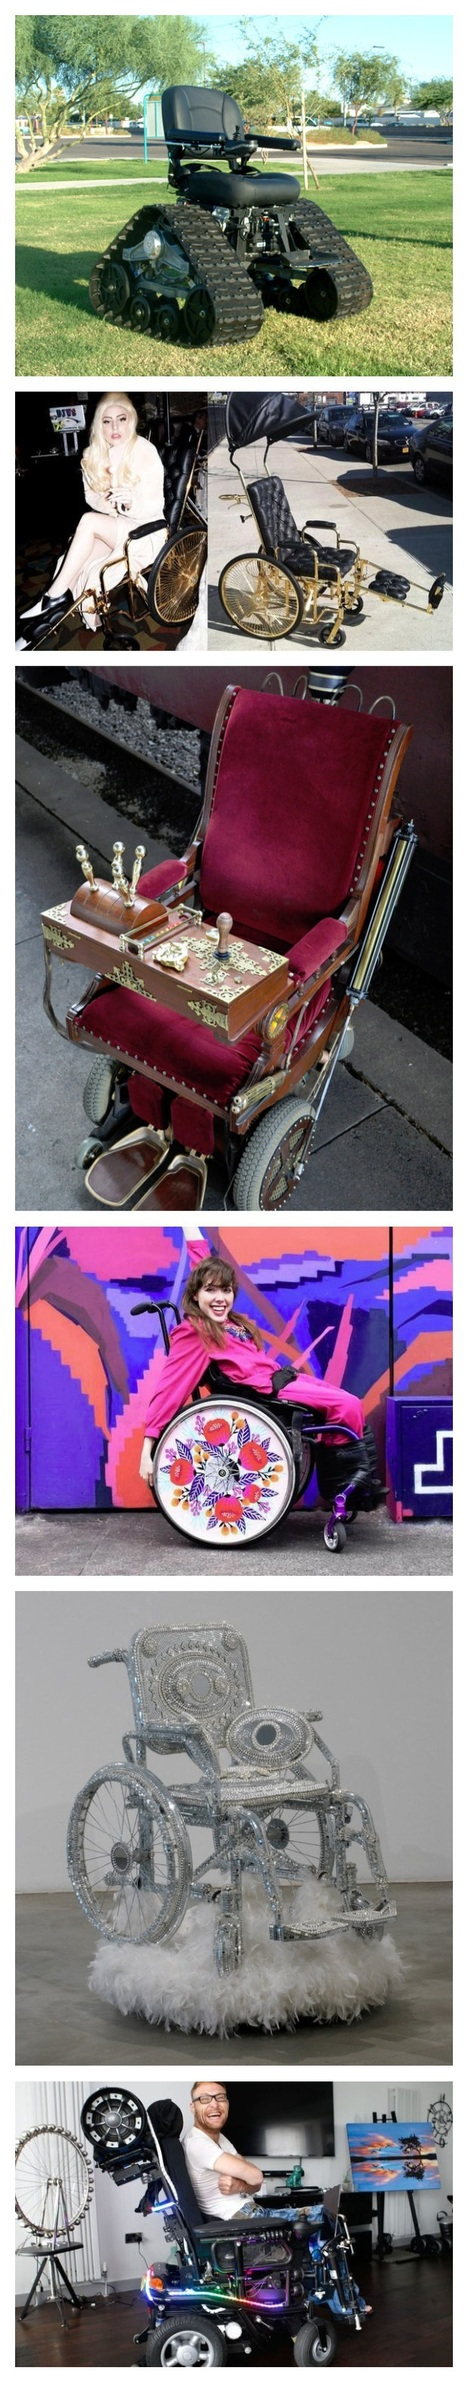 Amazing Pimped Out Wheelchairs